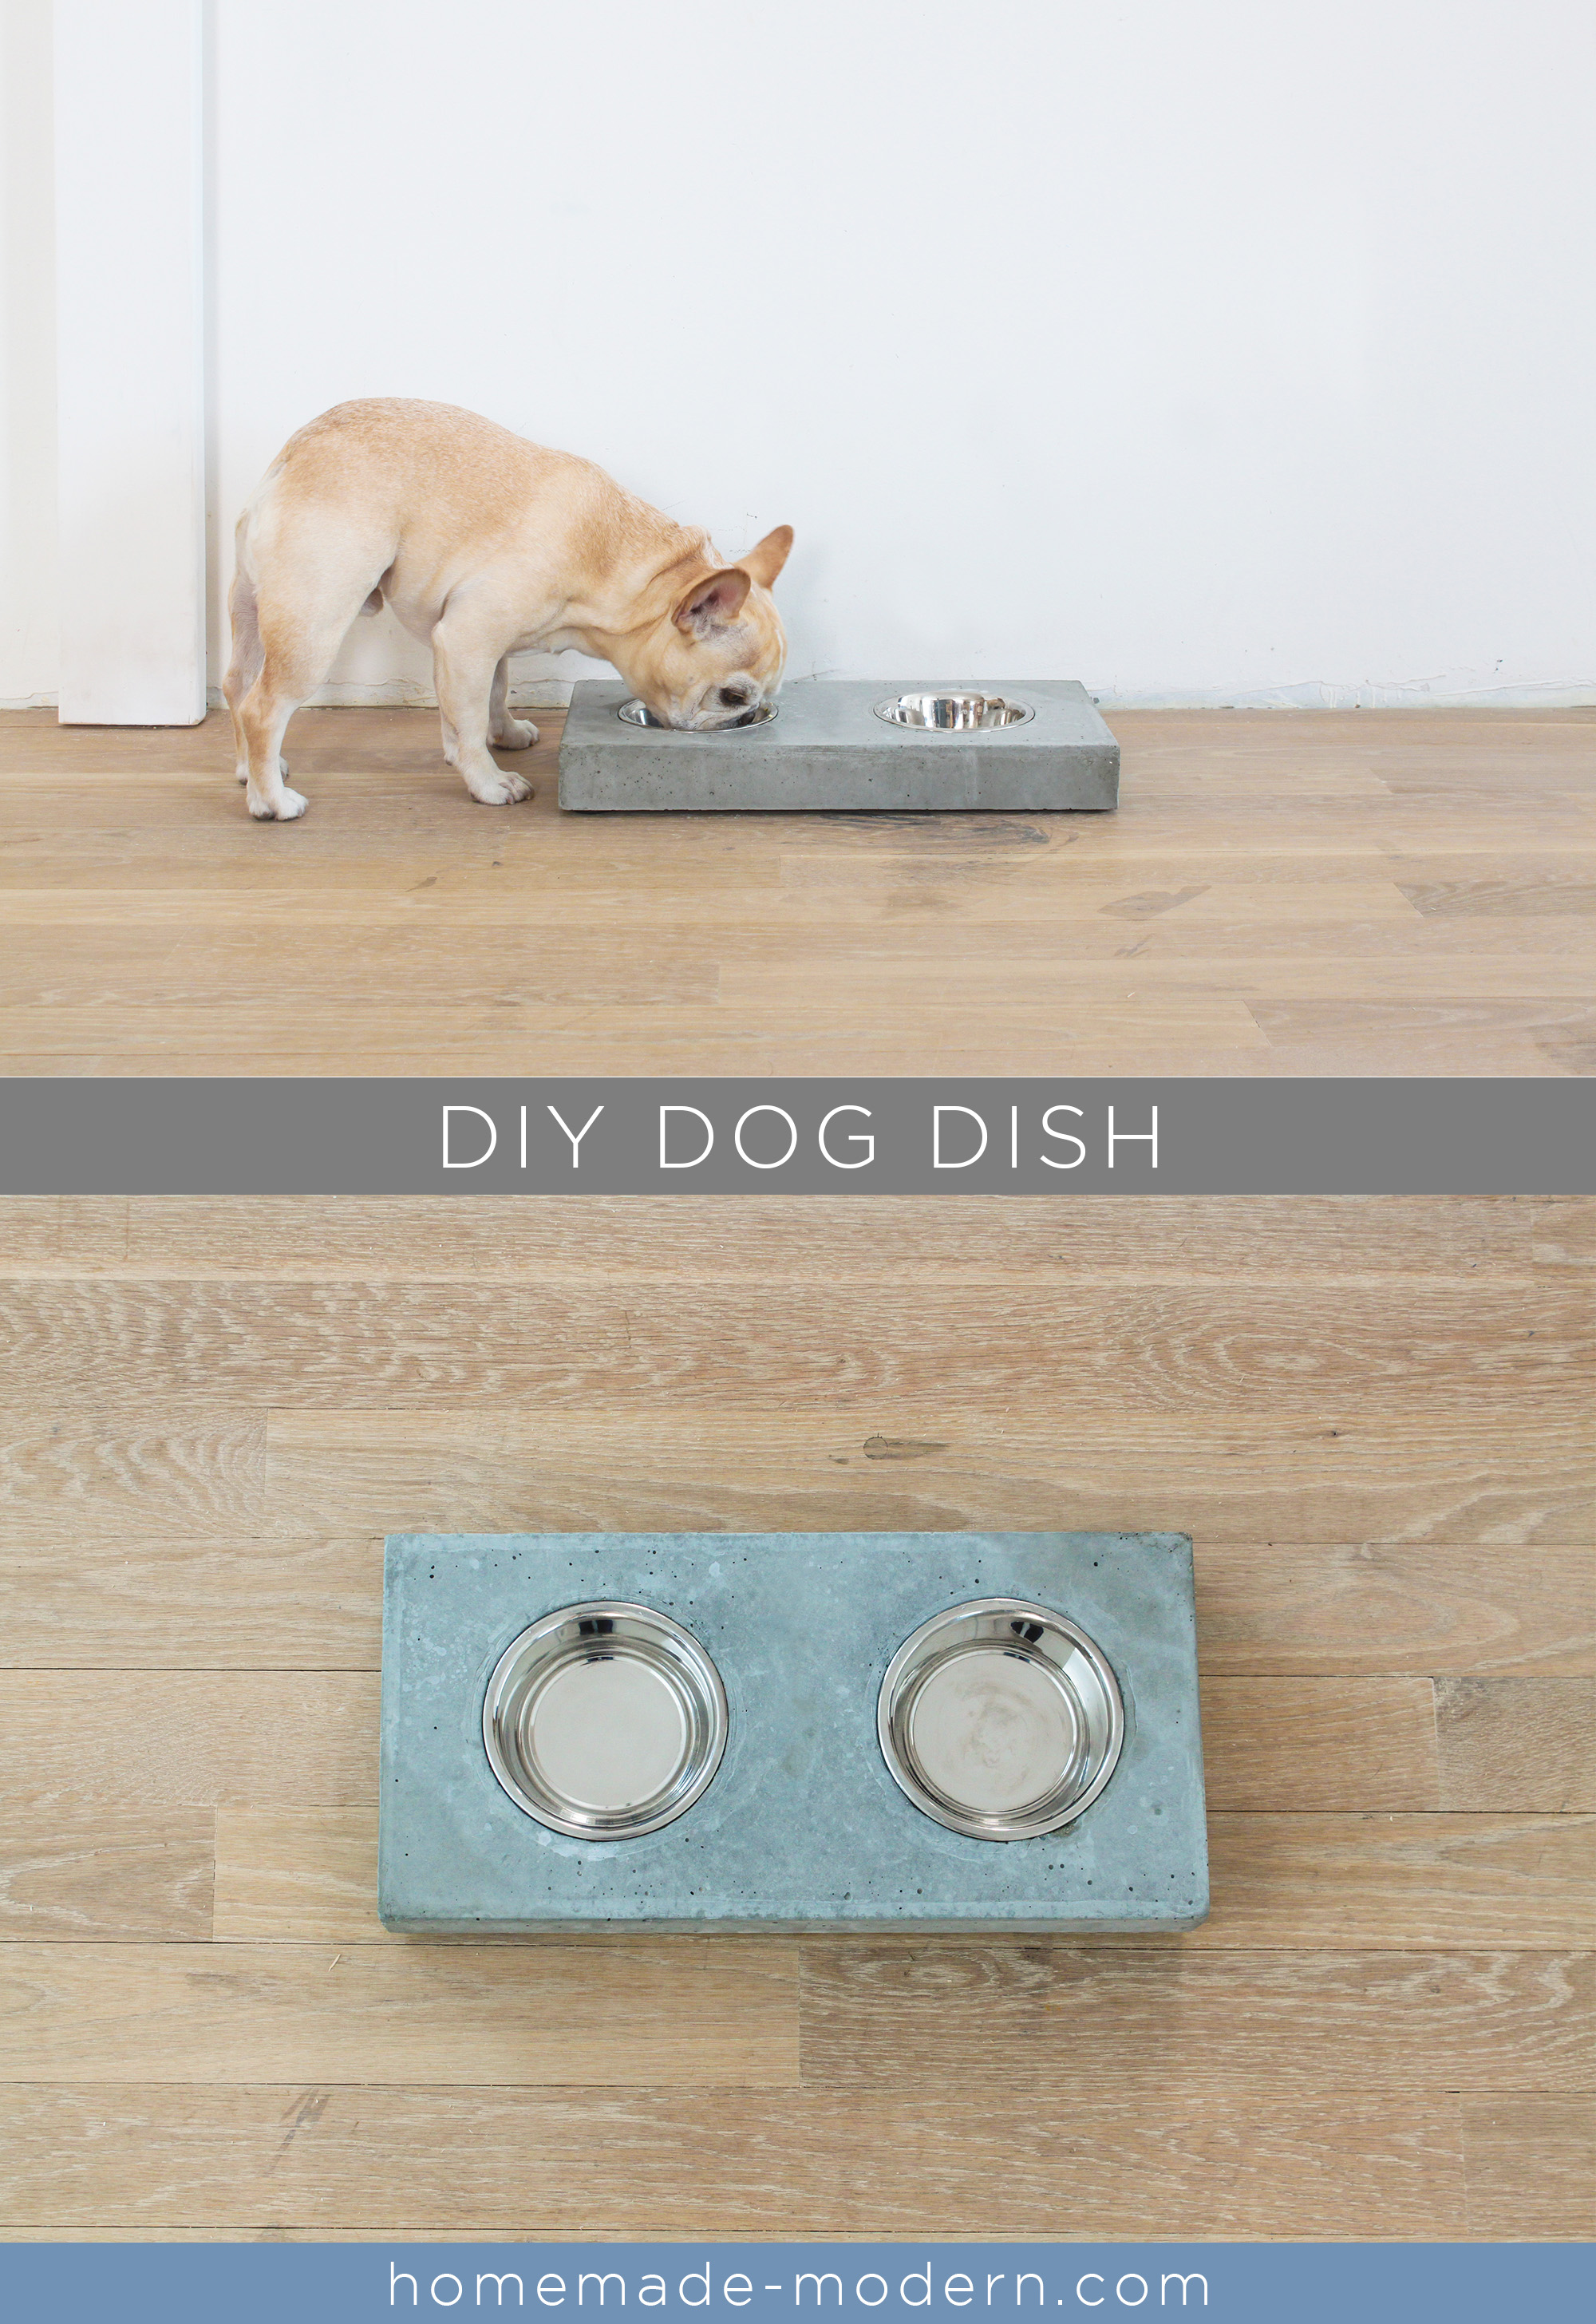 This DIY concrete dog dish station was made out of Quikrete 5000 concrete mix from Home Depot. Full instructions can be found at HomeMade-Modern.com